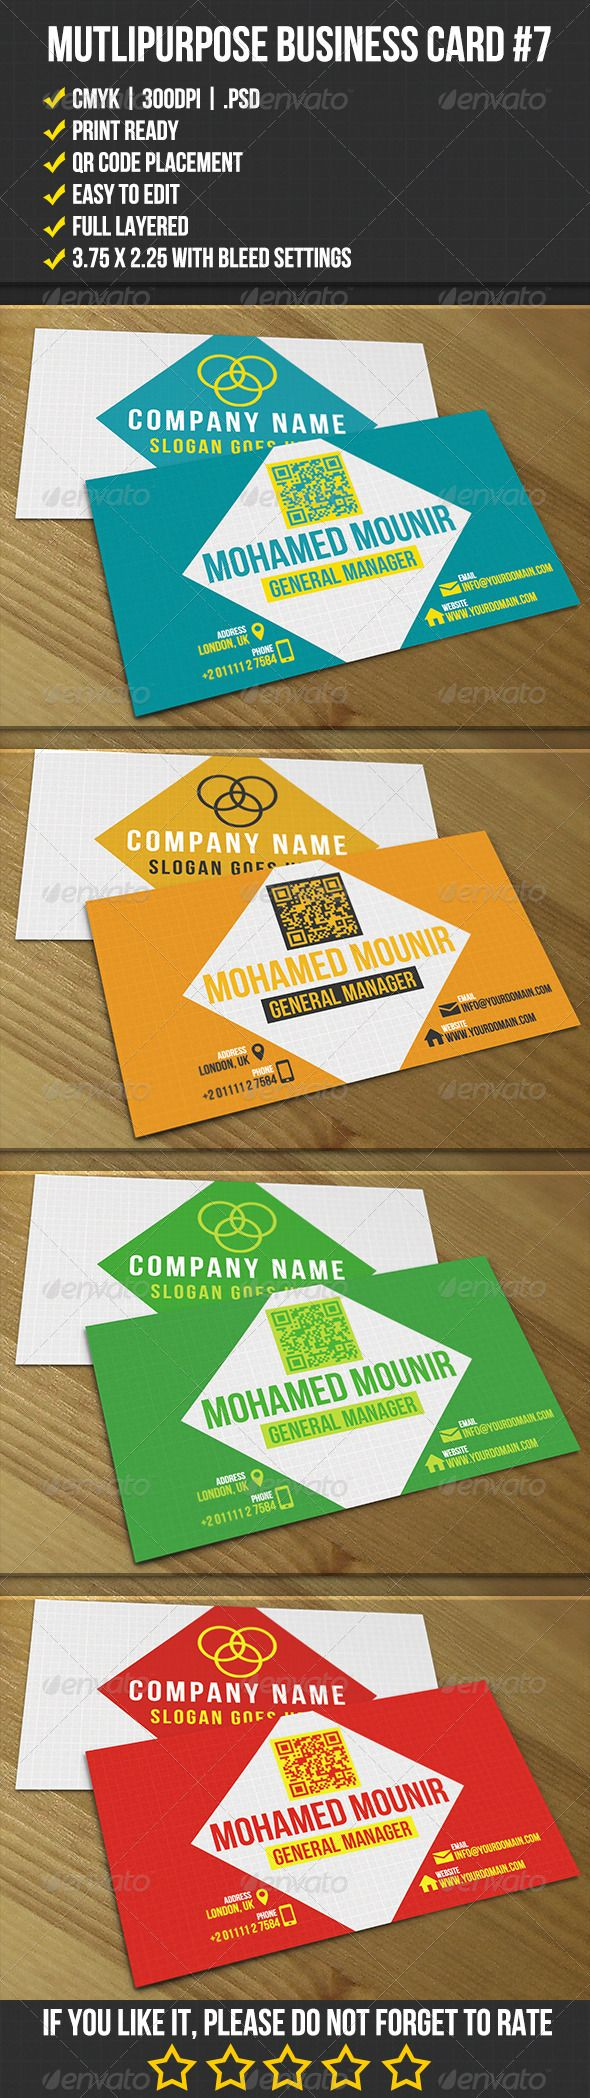 18 best business card templates images on pinterest business multipurpose business card 7 alramifo Images